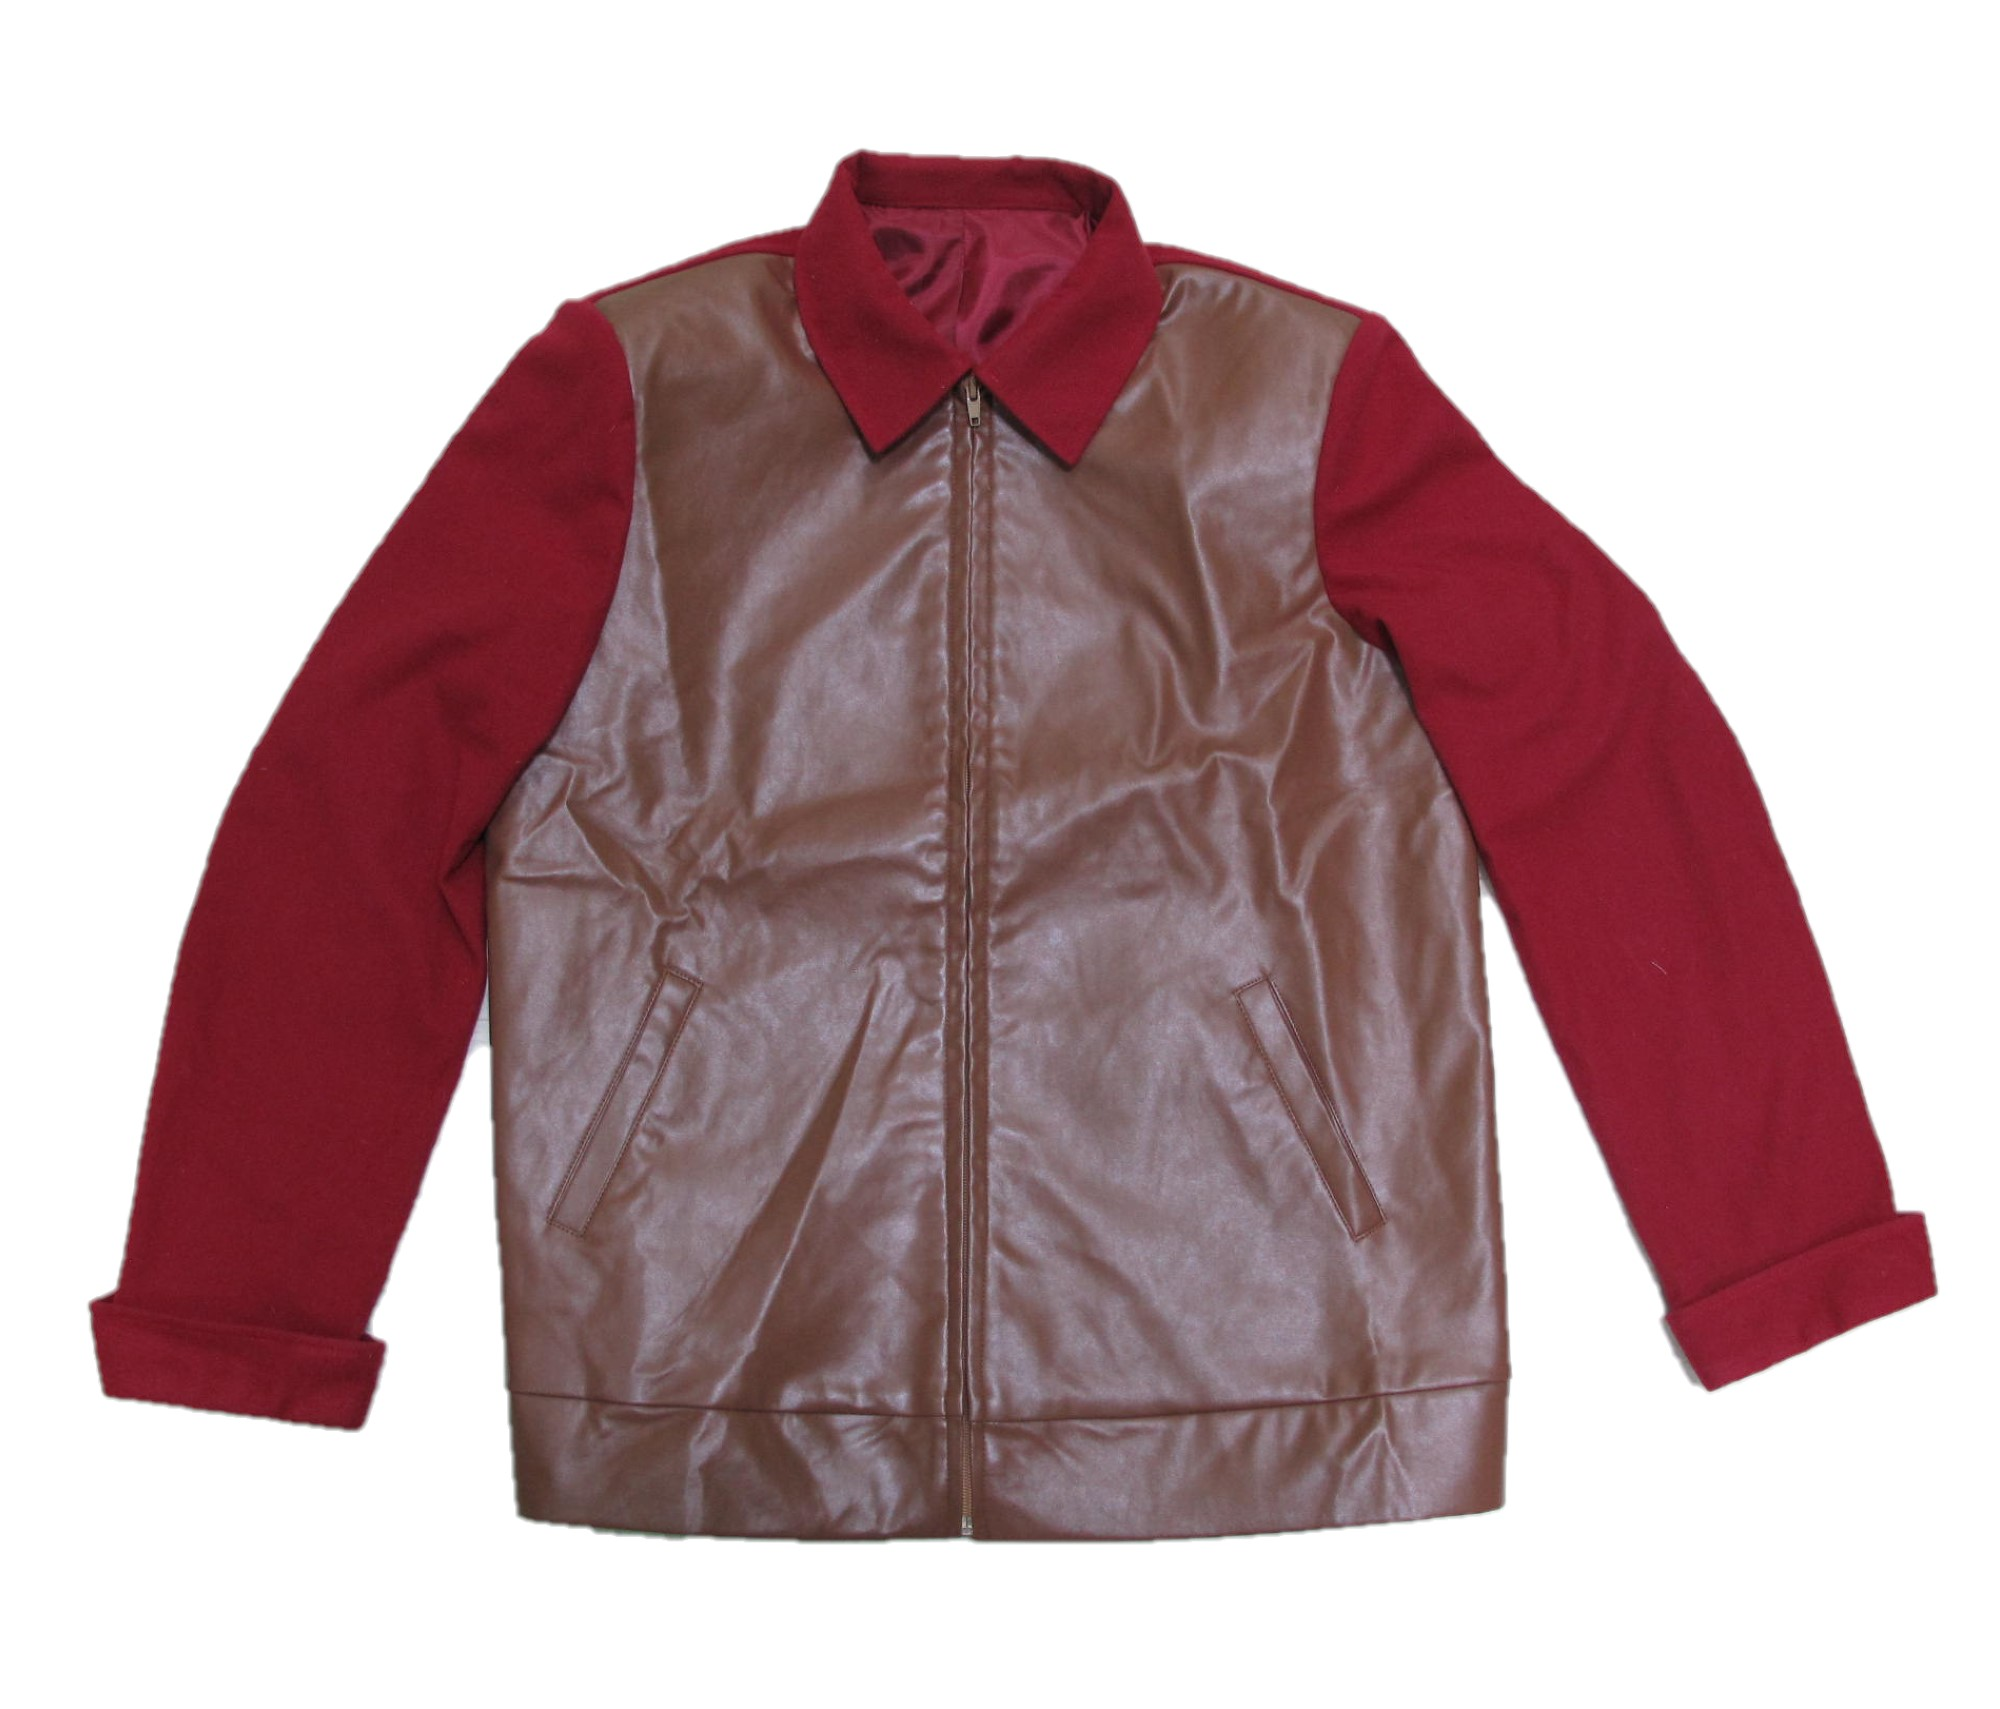 Back To The Future BTTF Marty McFly 1955 Maroon Jacket